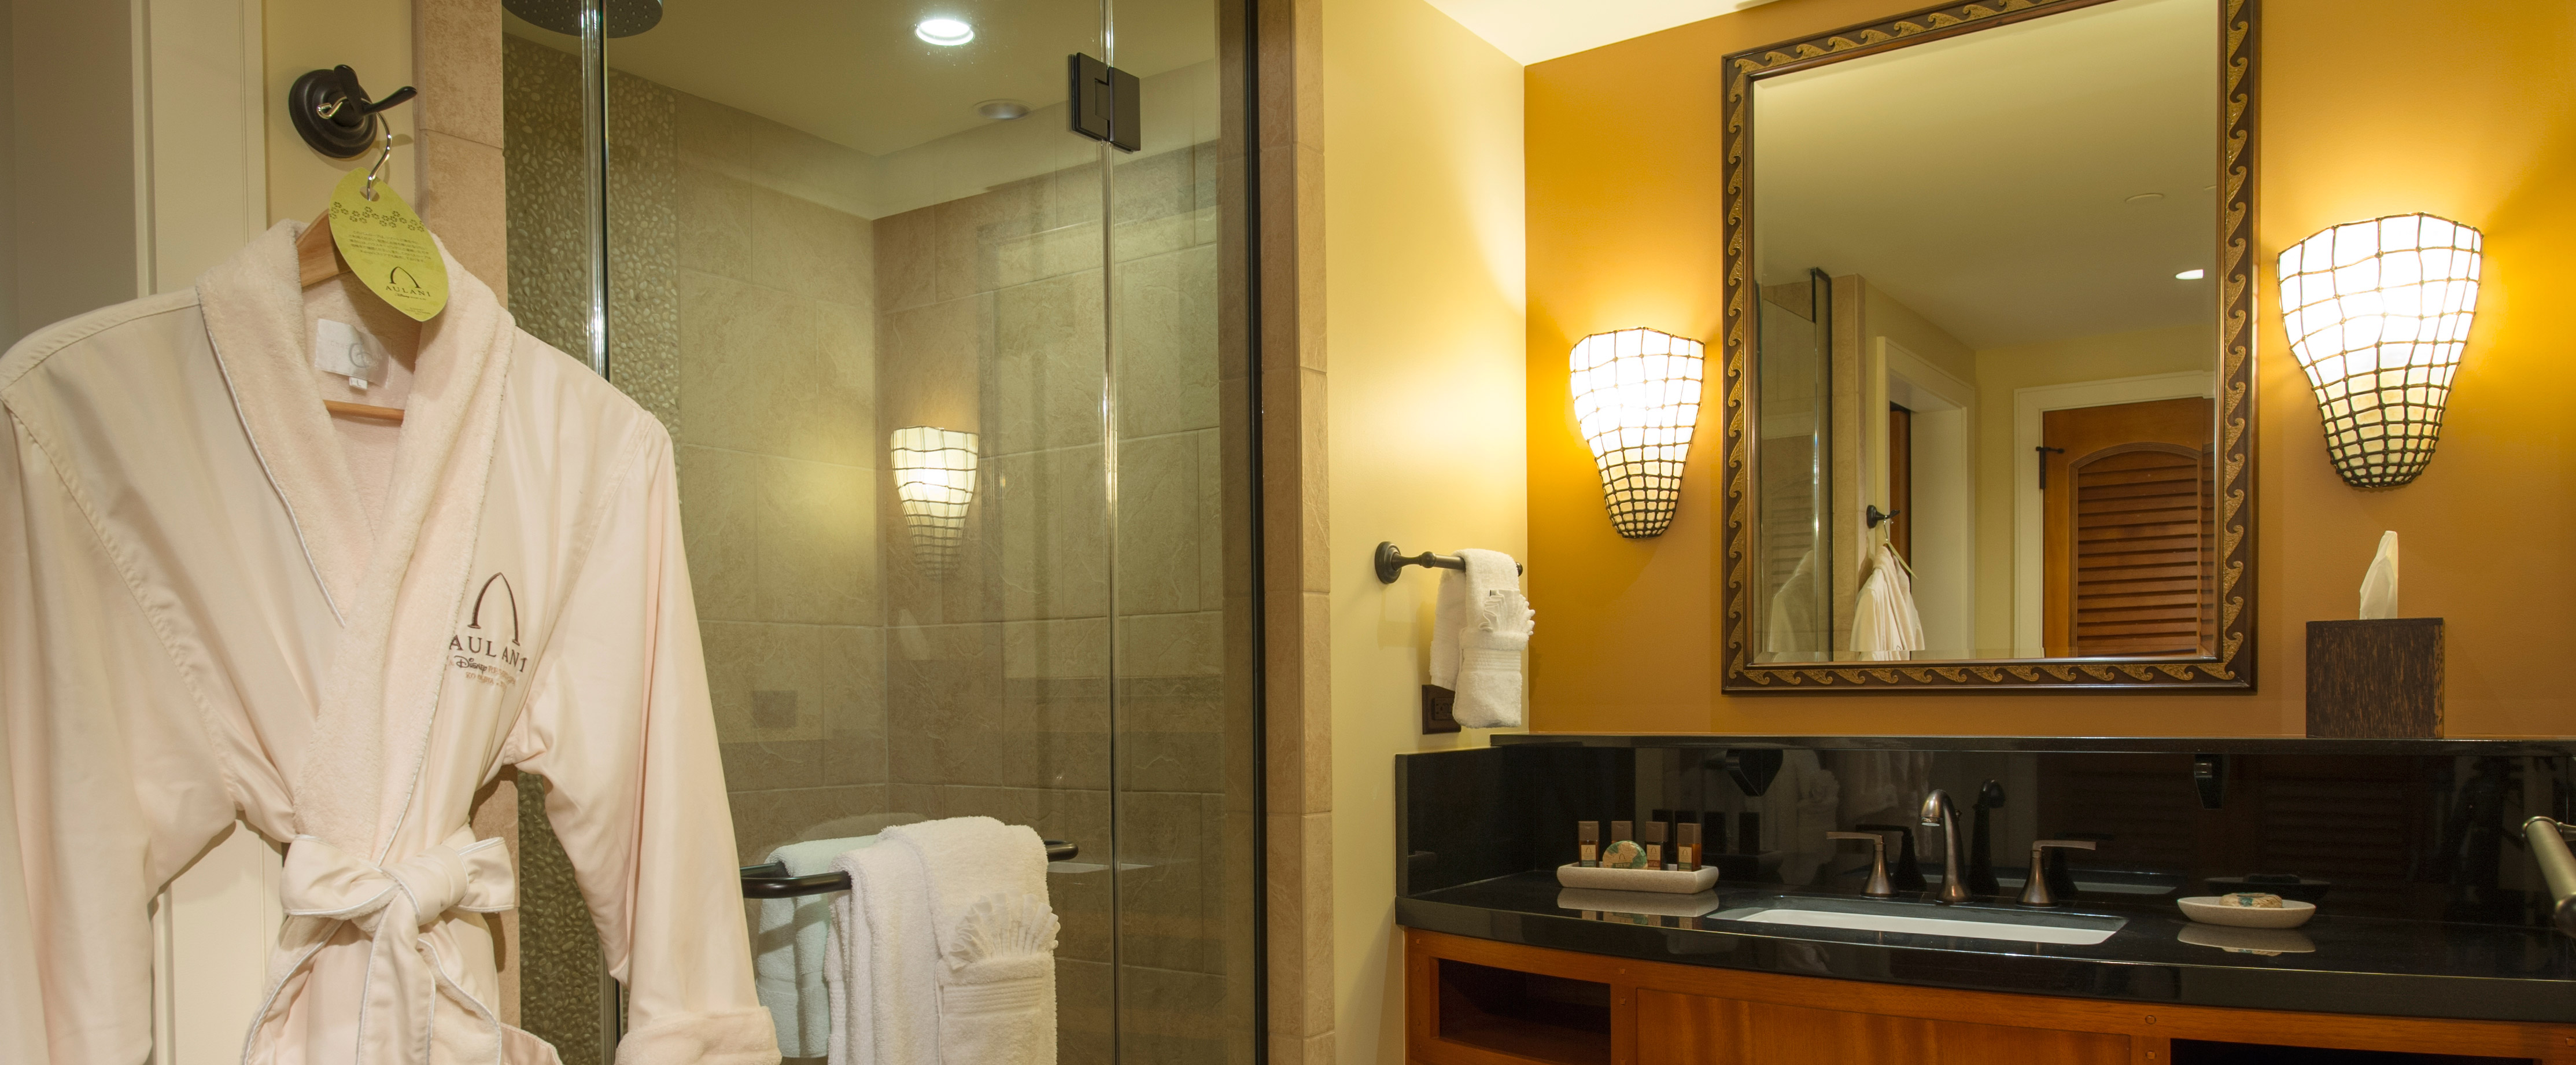 An Aulani terry robe hanging beside a glass-door shower next to a vanity with illuminated wall sconces